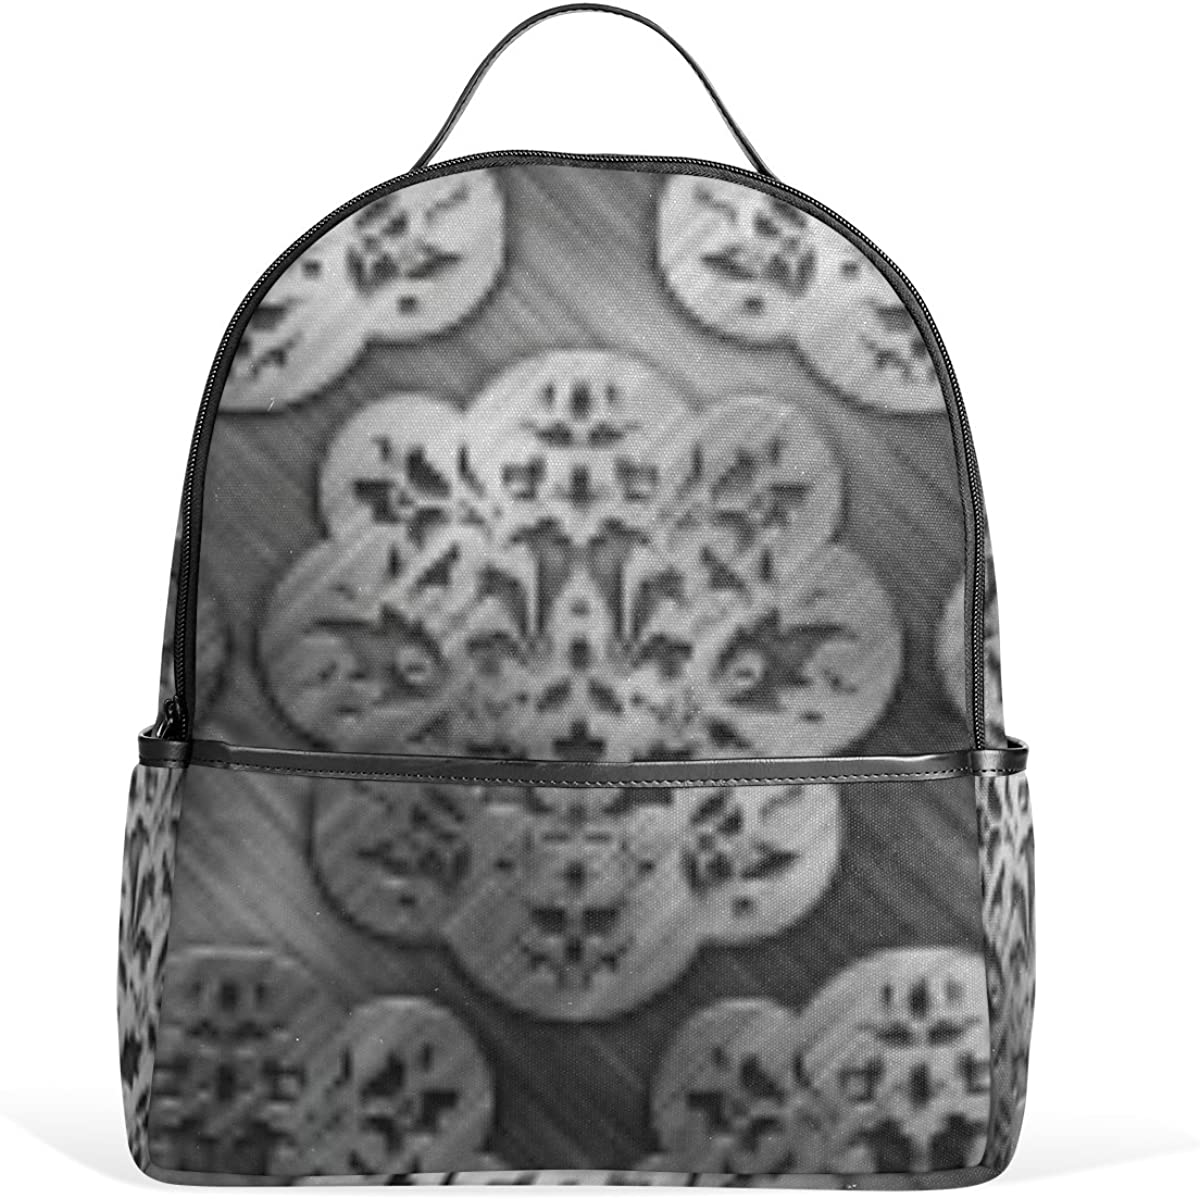 Mr.Weng Metallic Pattern Steel Printed Canvas Backpack For Girl and Children